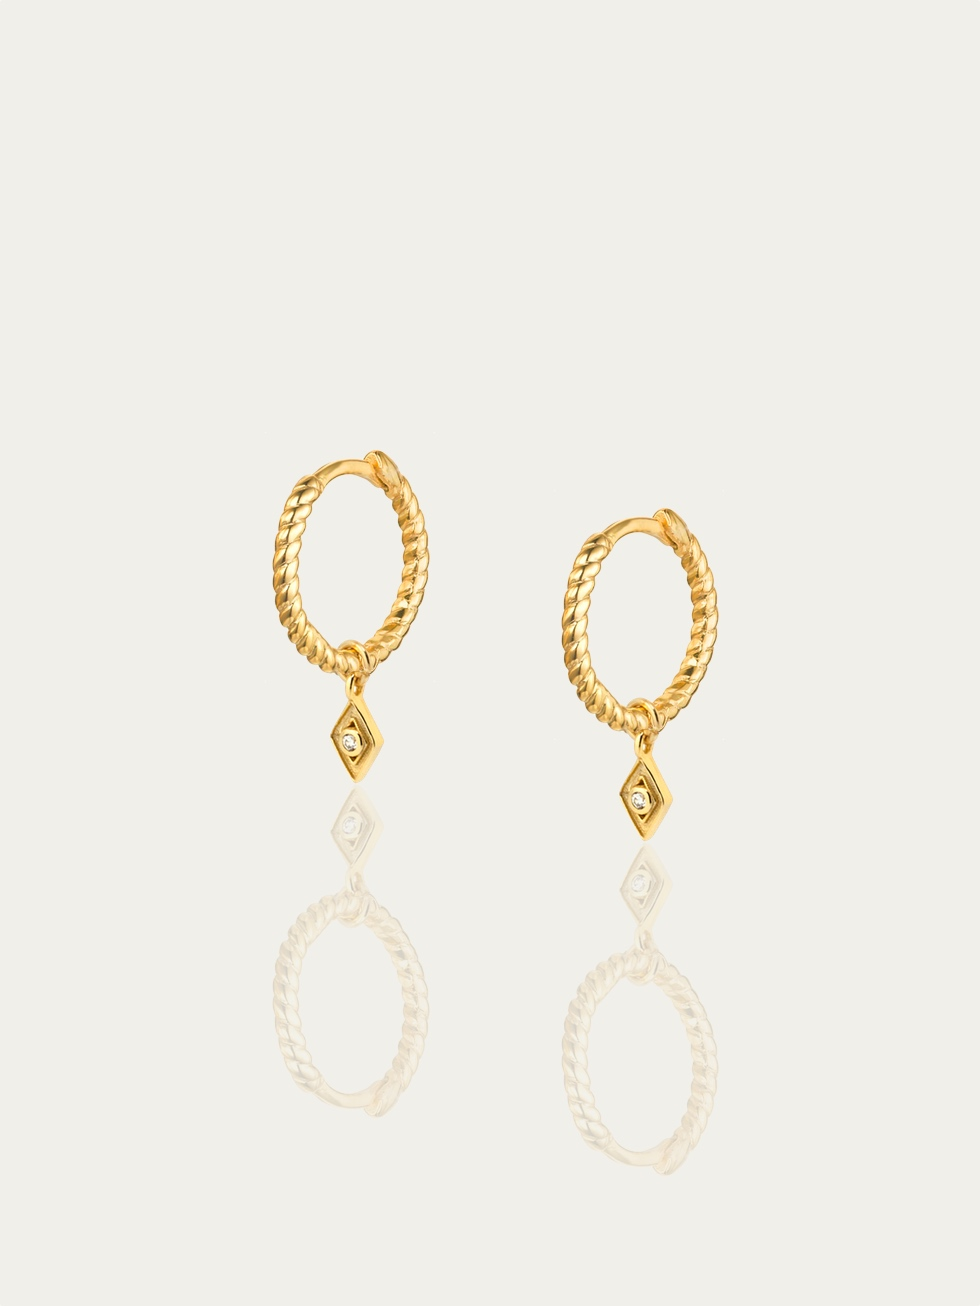 ROMBO TWIST gold hoop earrings